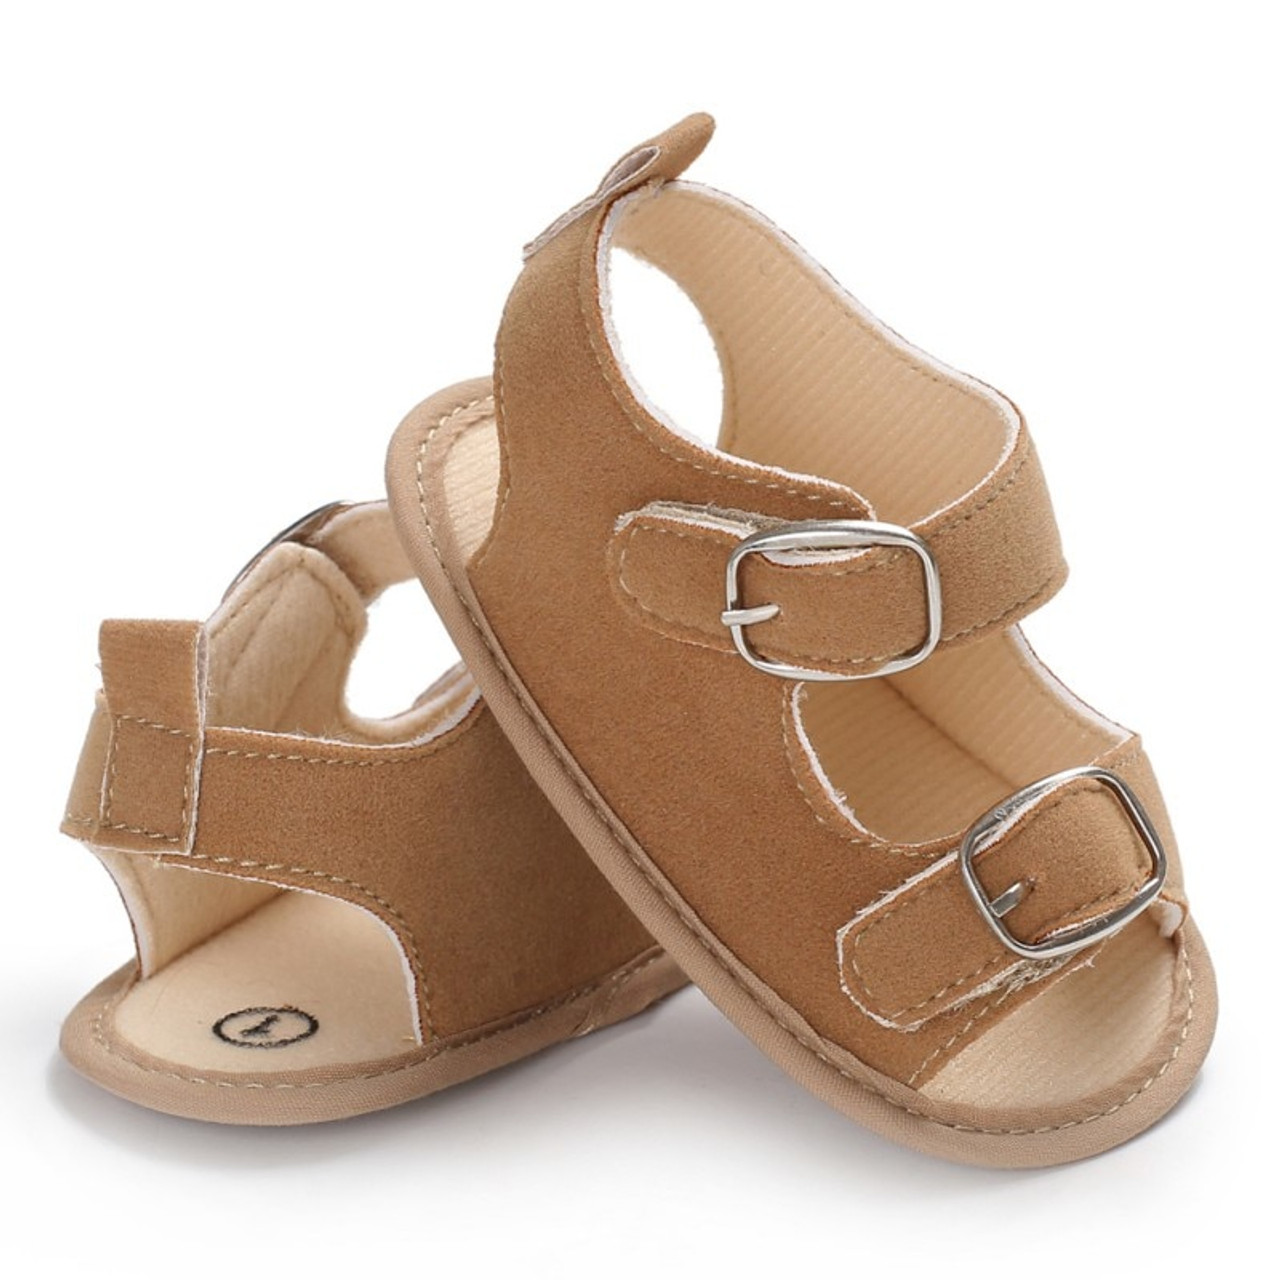 new product 9afb7 a7481 ... Summer Baby Boys Girls Sandals Toddler Solid Color Slip-On Shoes Baby  PU Leather Sandals ...